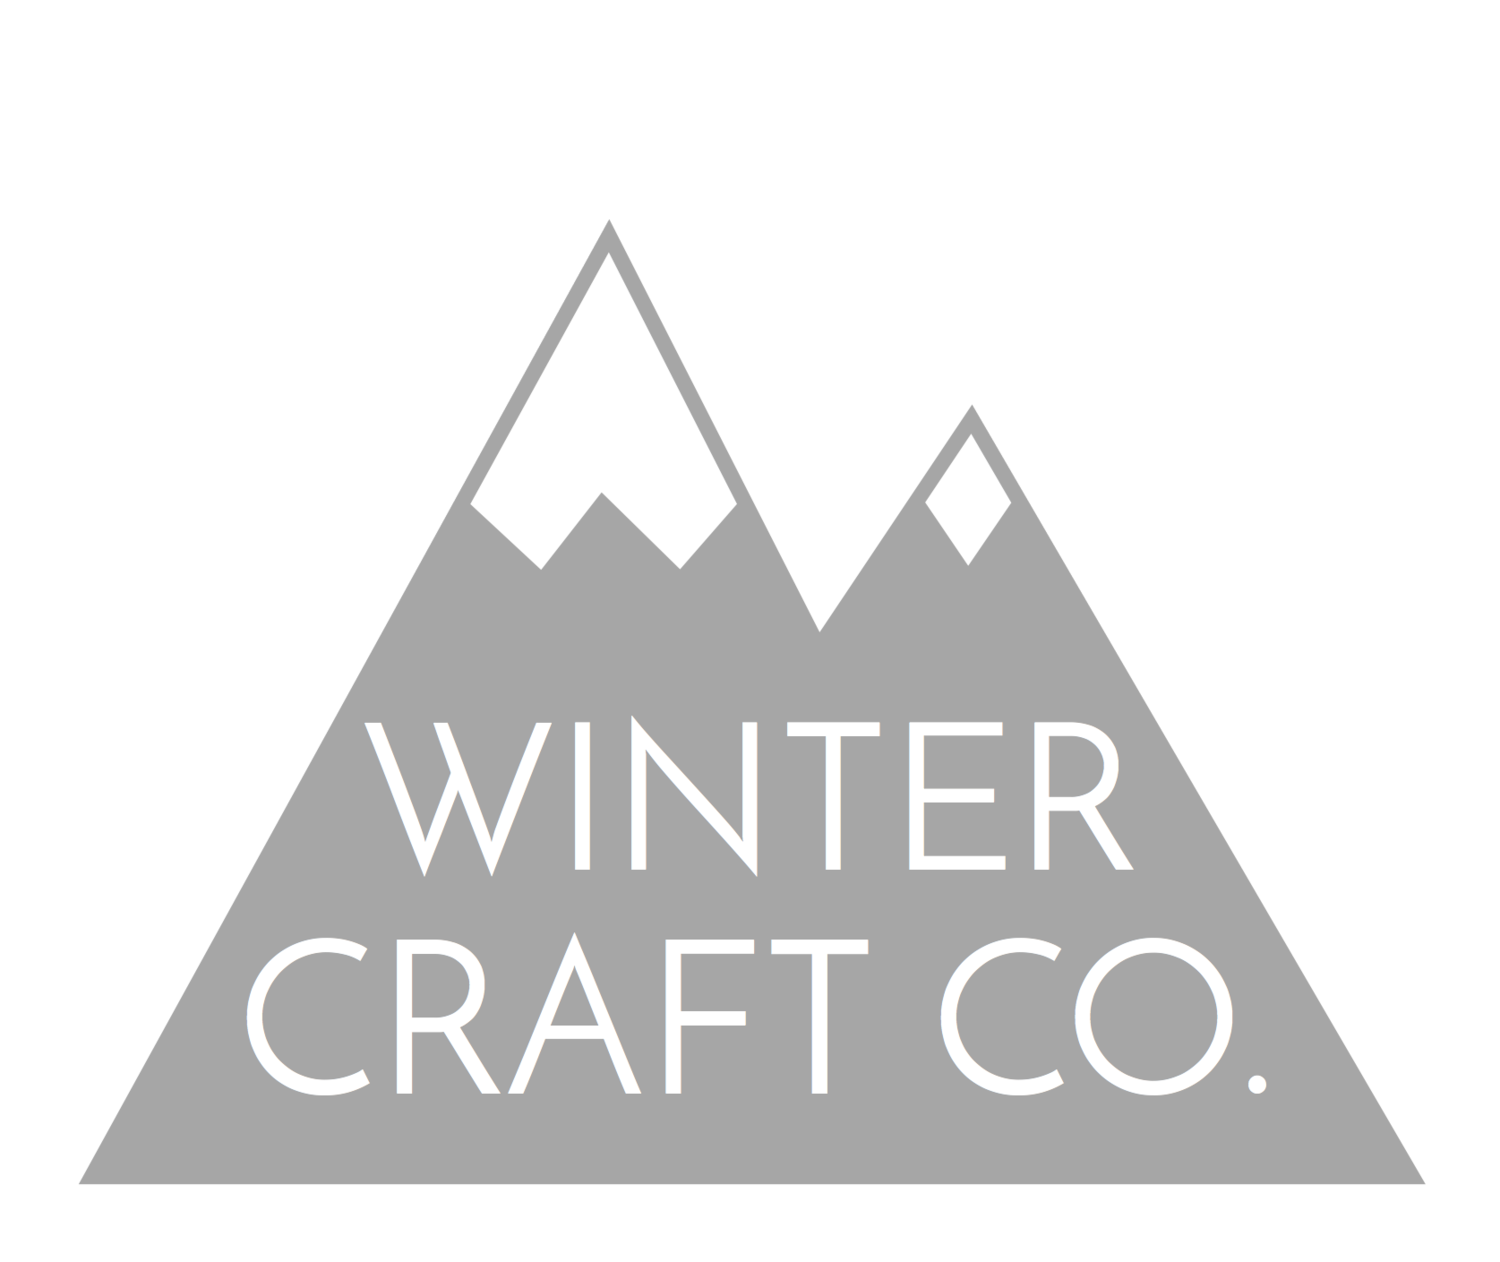 WINTER CRAFT CO.